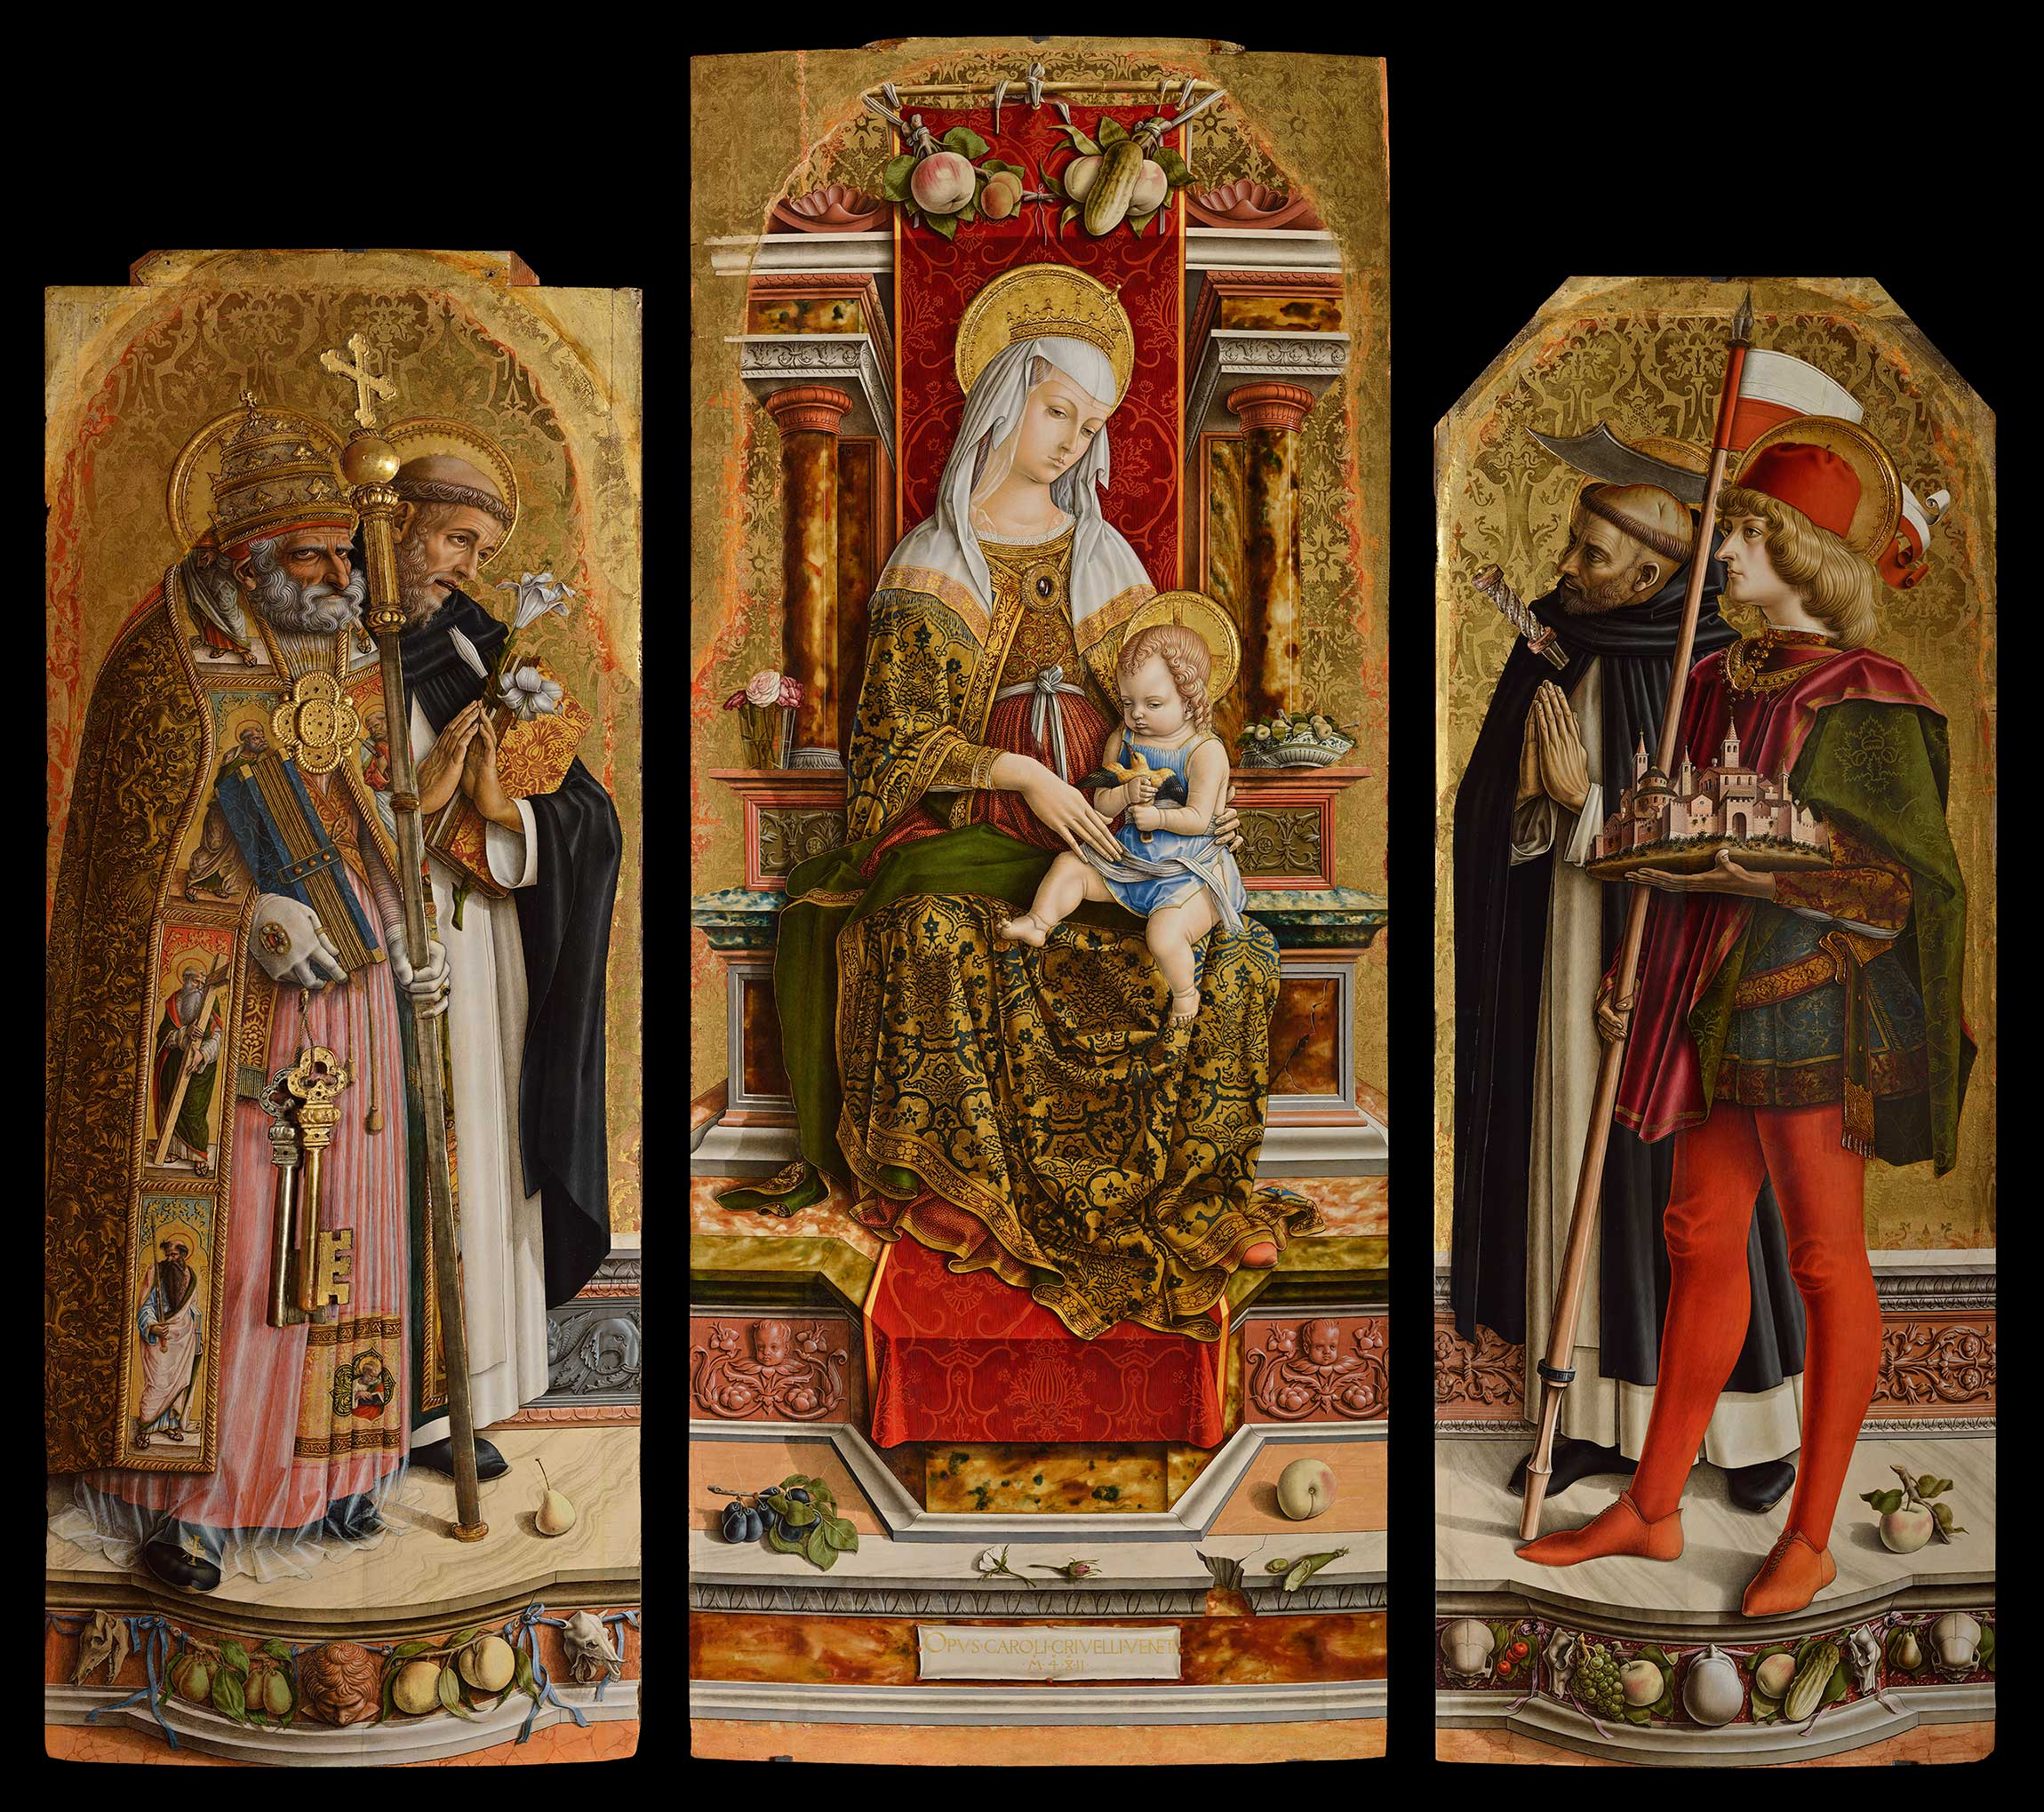 Crivelli, 1482, Tryptique de Saint Dominique, Brera, Milan